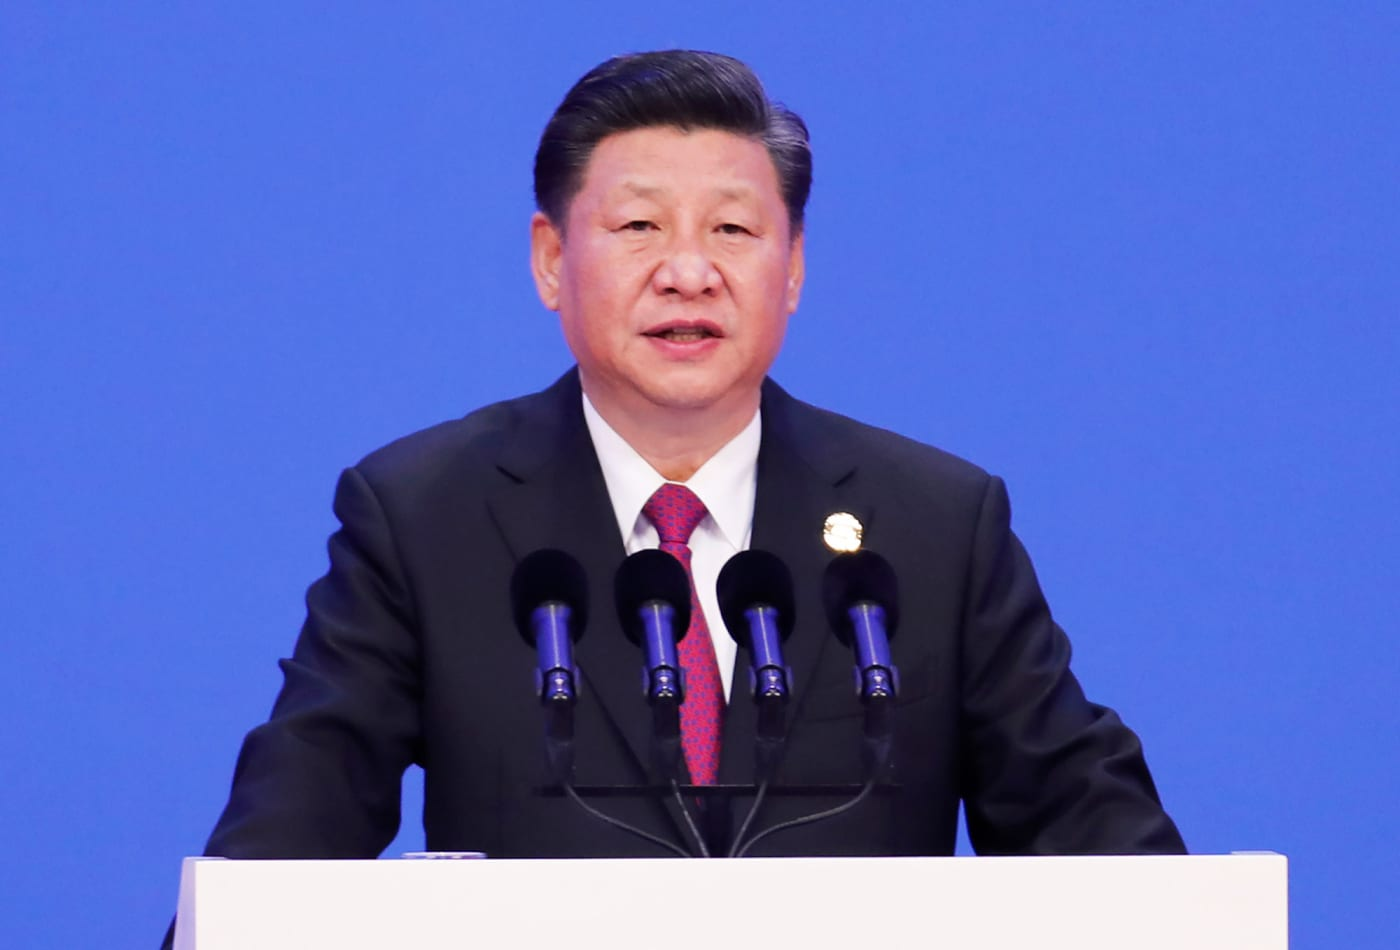 China's Xi calls for 'consultation and cooperation' to resolve international disputes